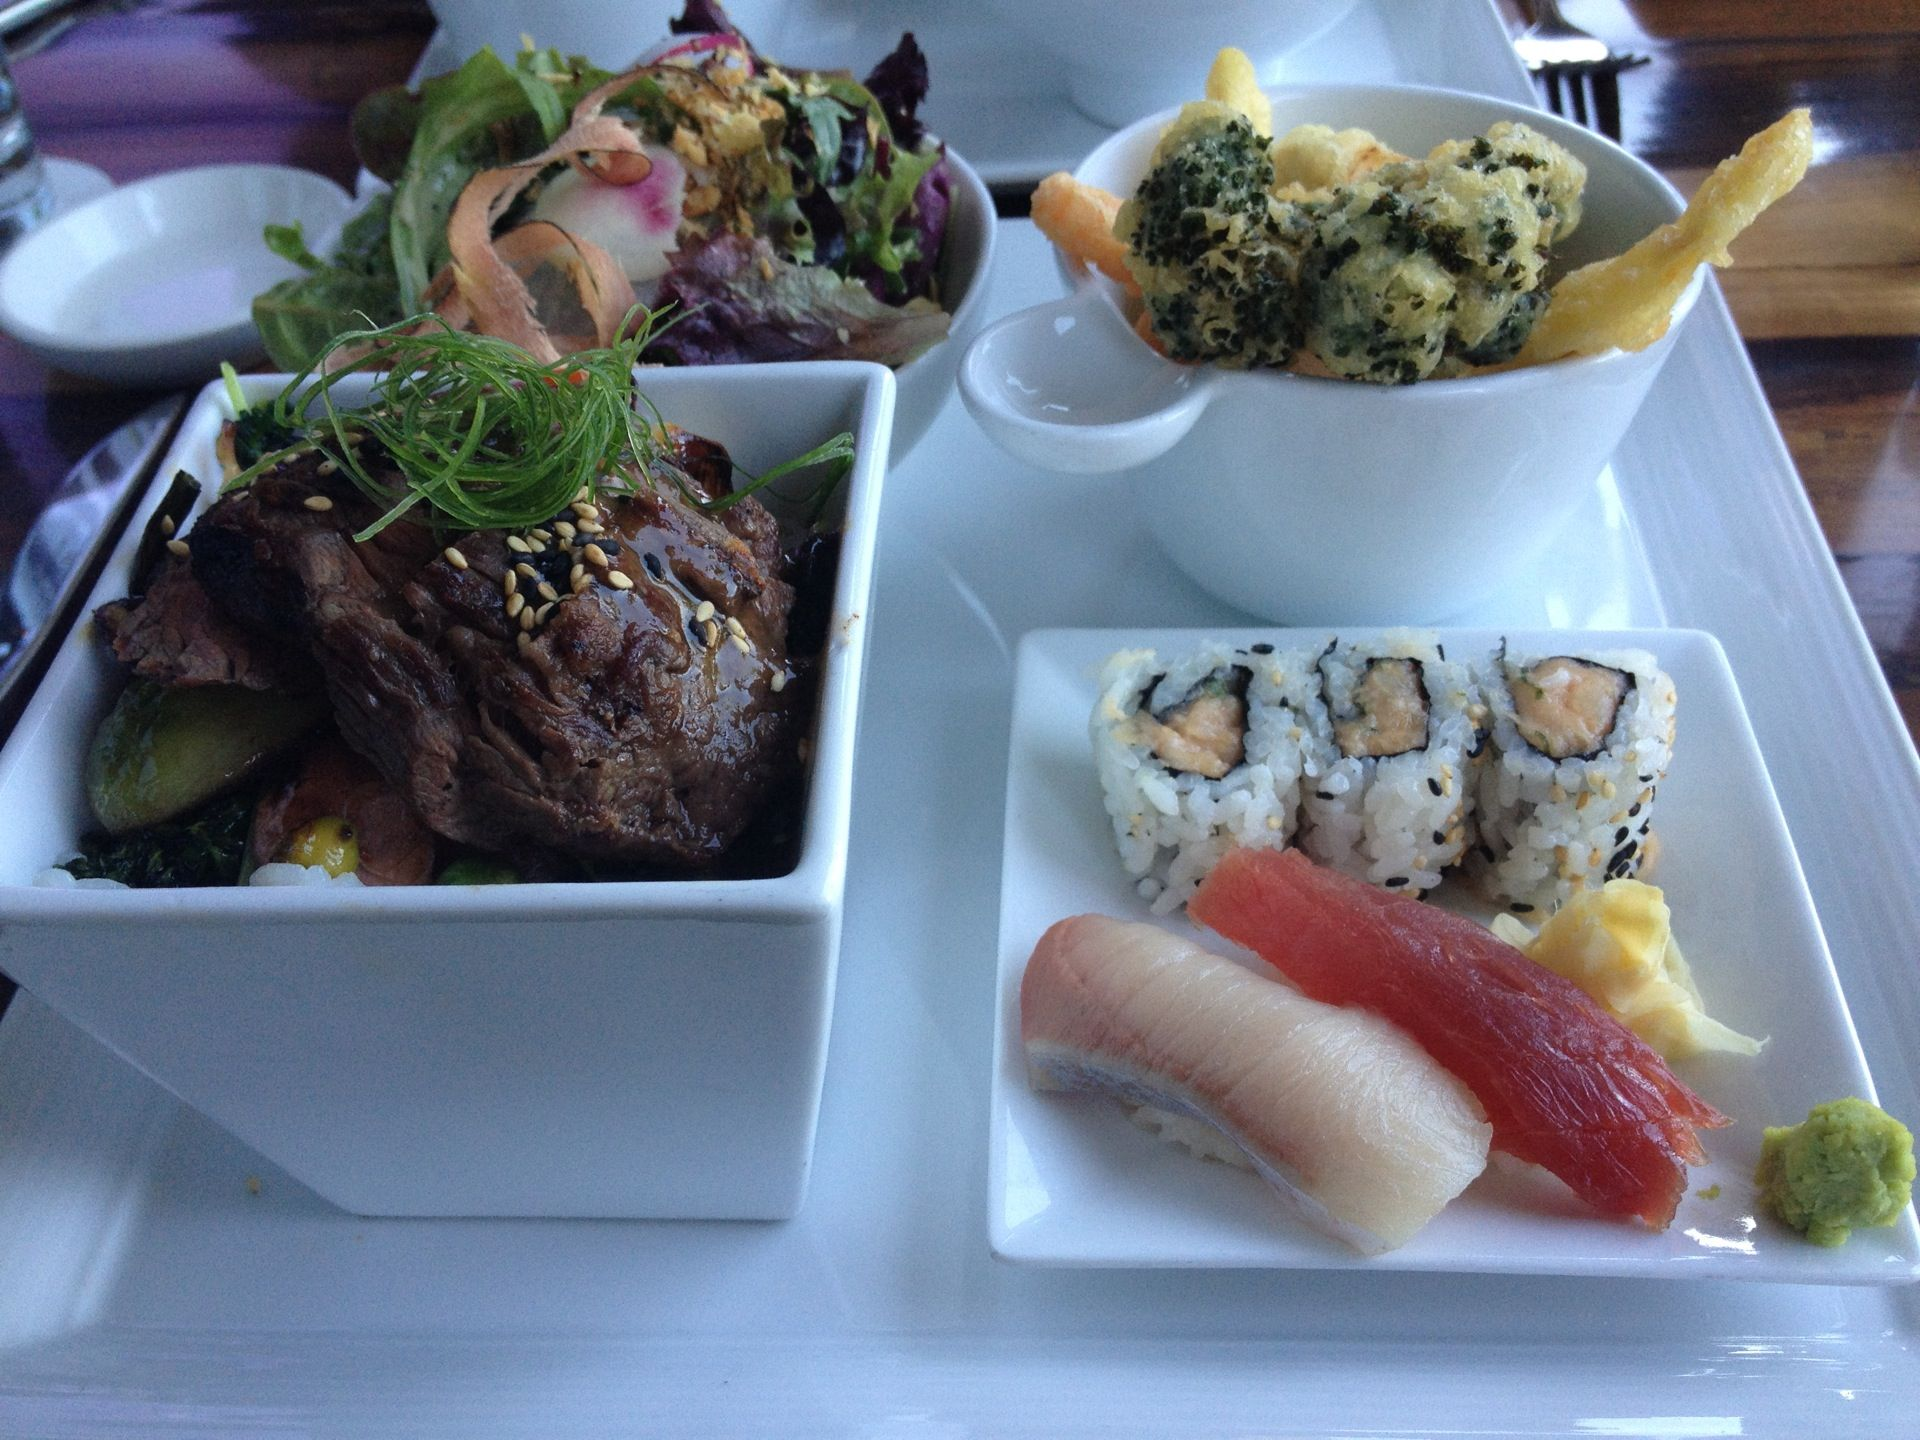 morimoto's contemporary japanese menu infuses traditional dishes